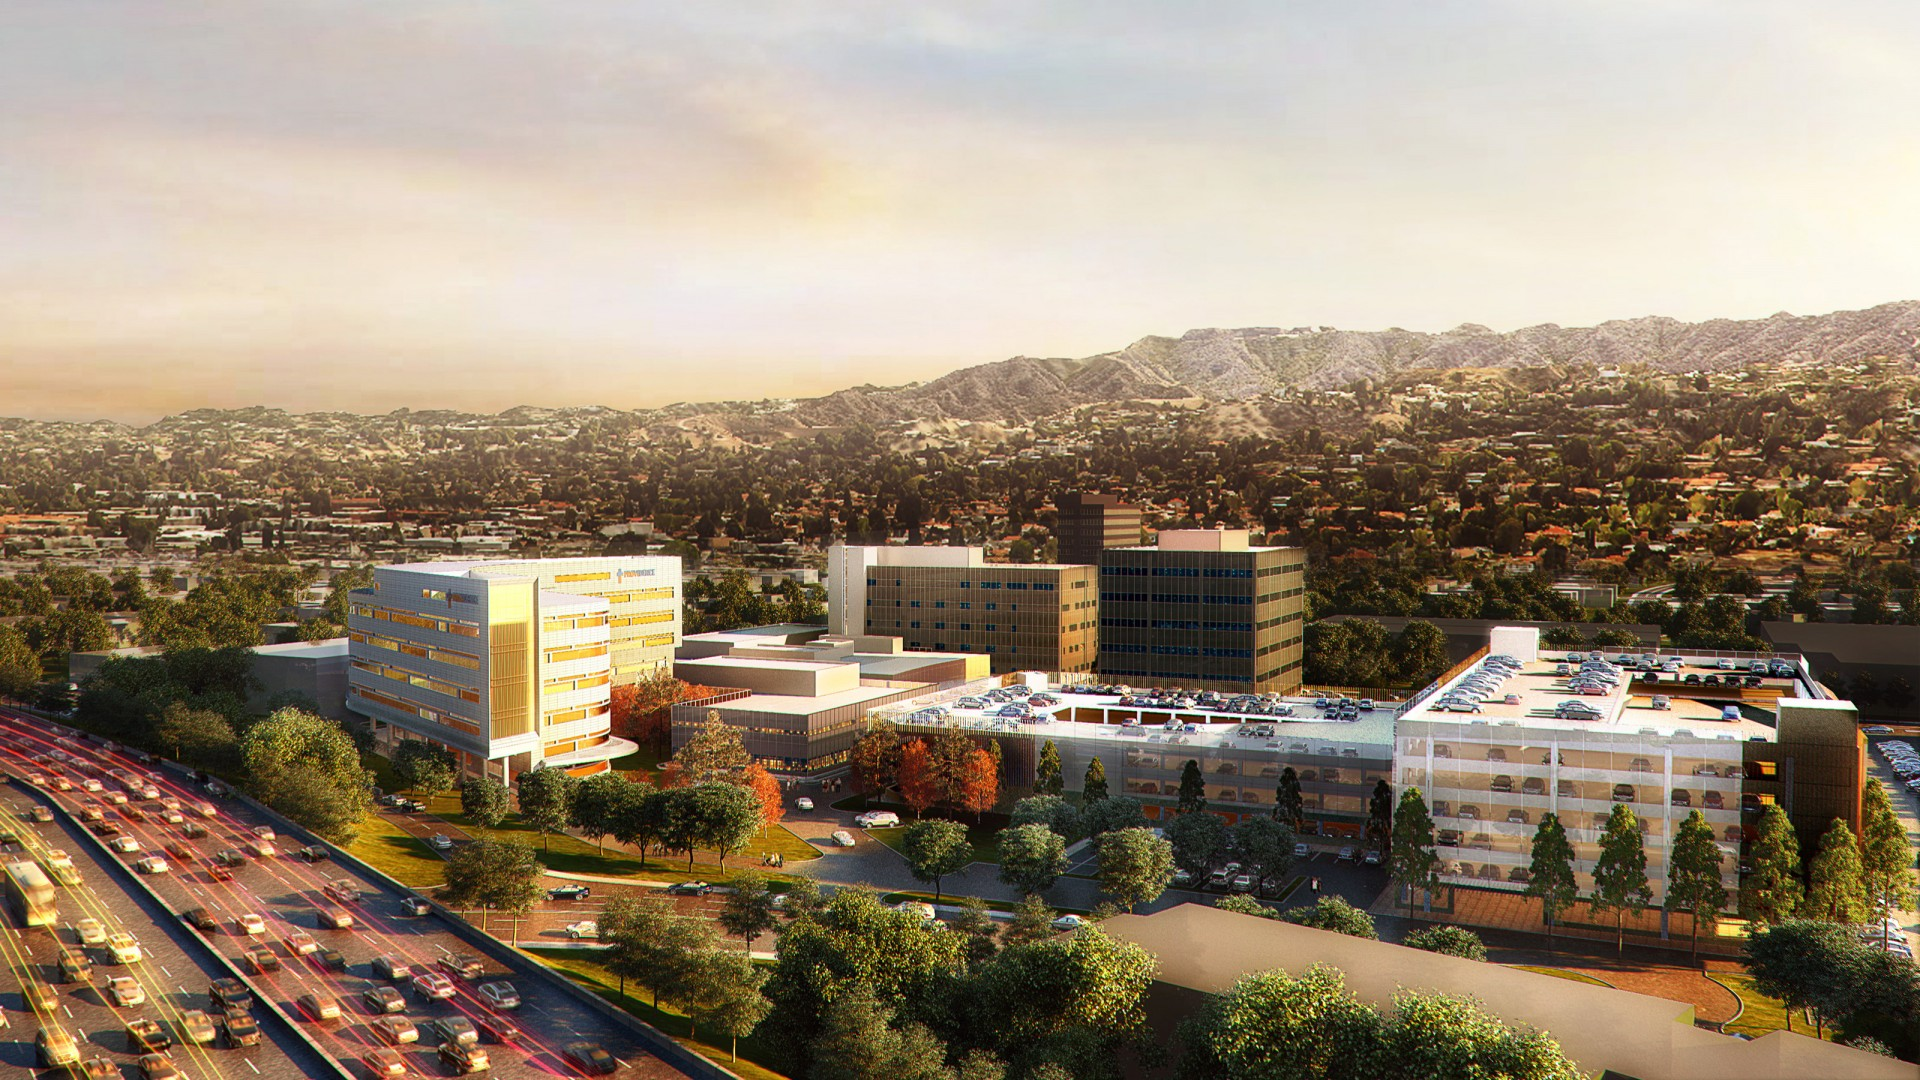 The new Providence Cedars-Sinai Tarzana Medical Center, as depicted in an architectural rendering that features a future hospital tower and parking structure. Image courtesy of Providence Tarzana Medical Center.